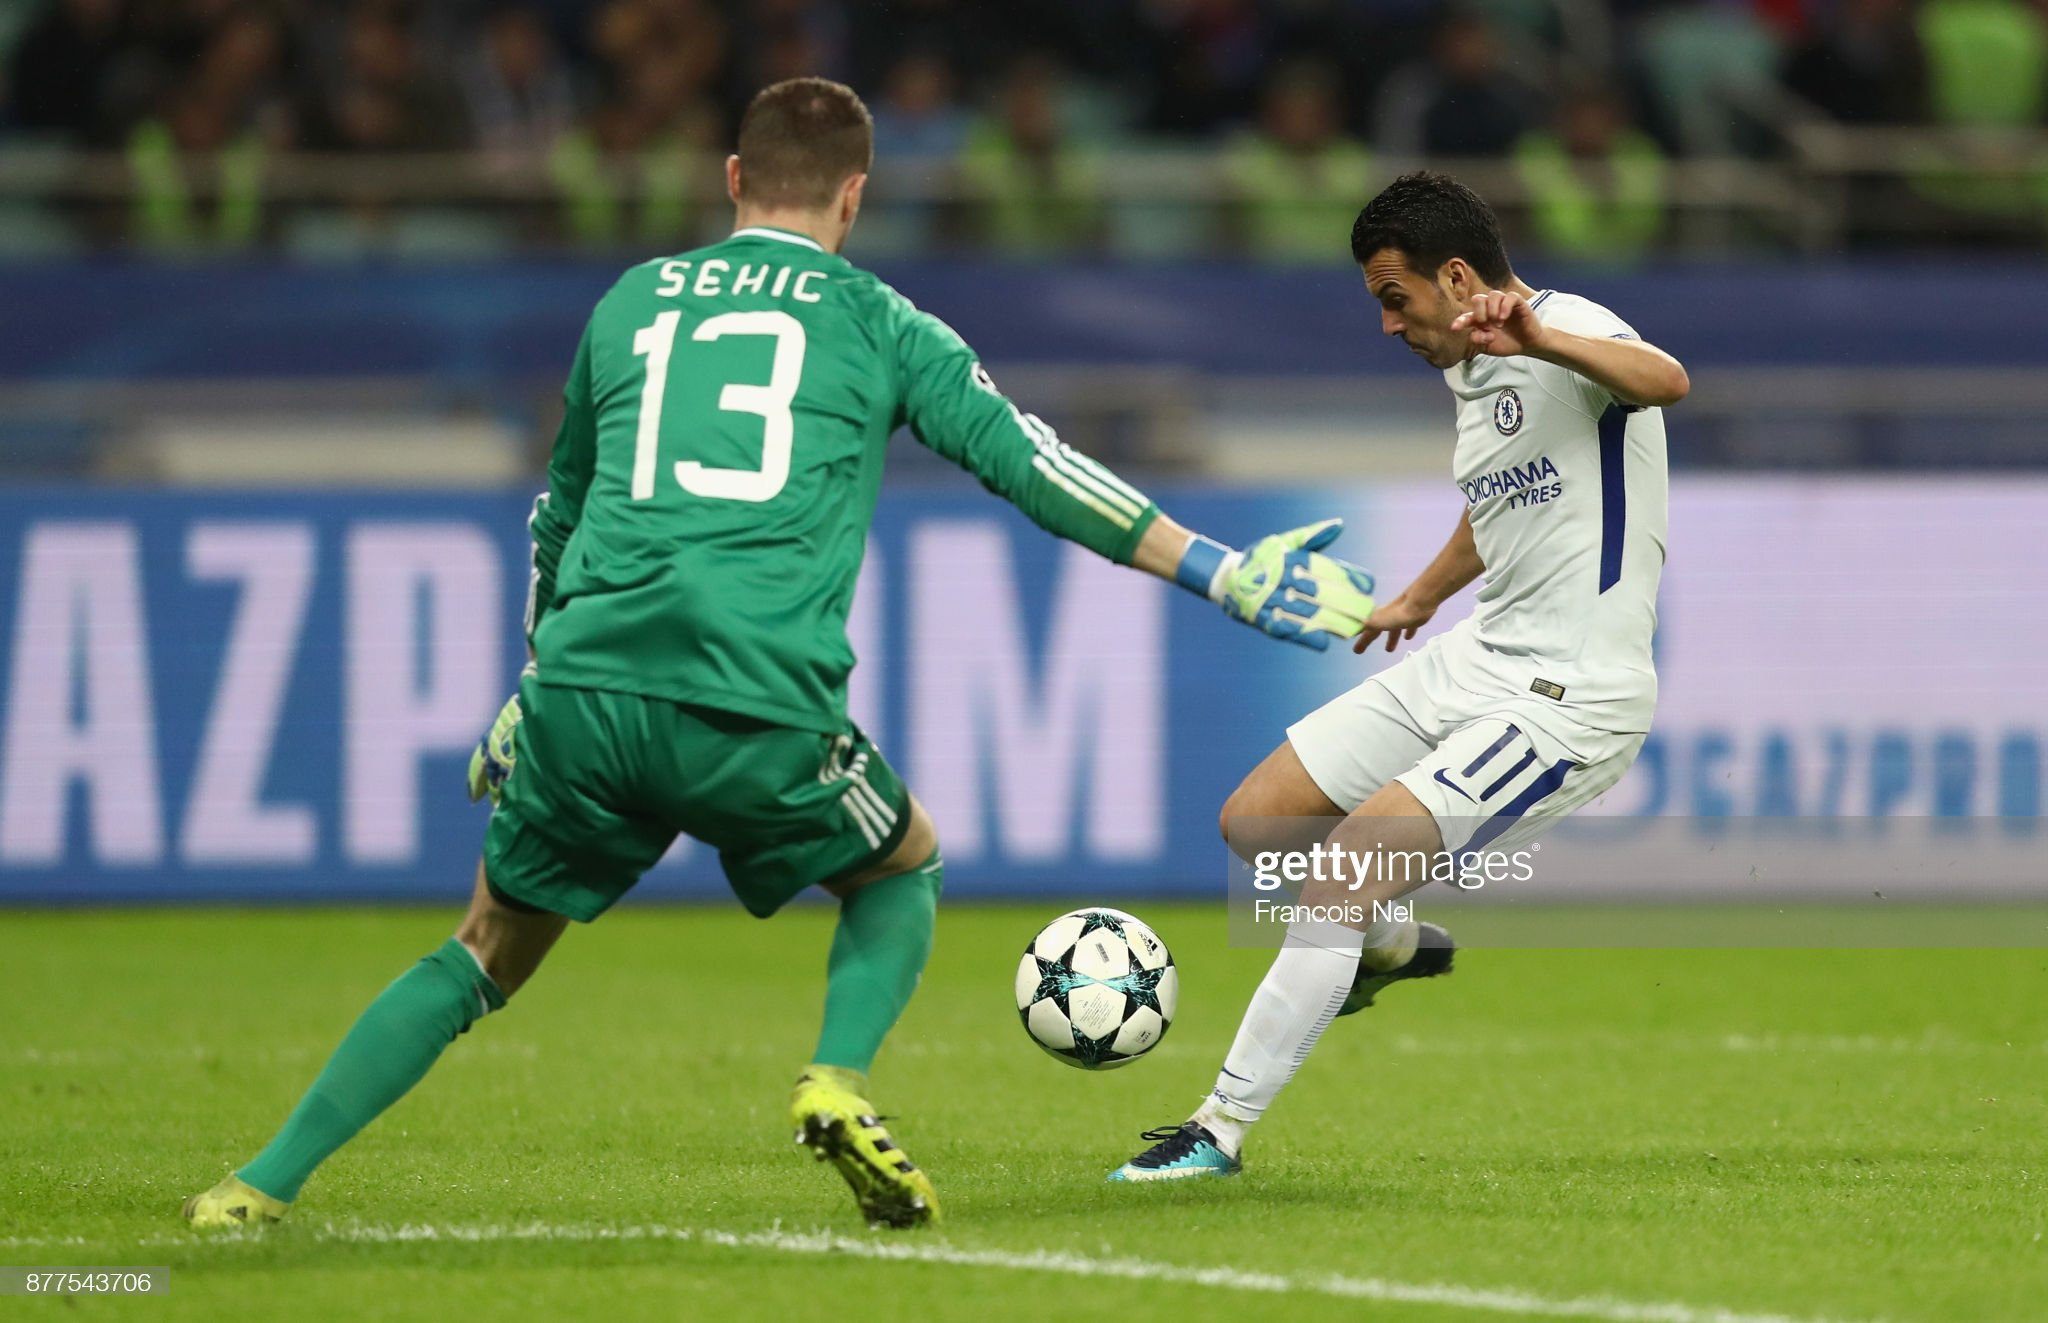 Qarabag FK v Chelsea FC - UEFA Champions League : News Photo